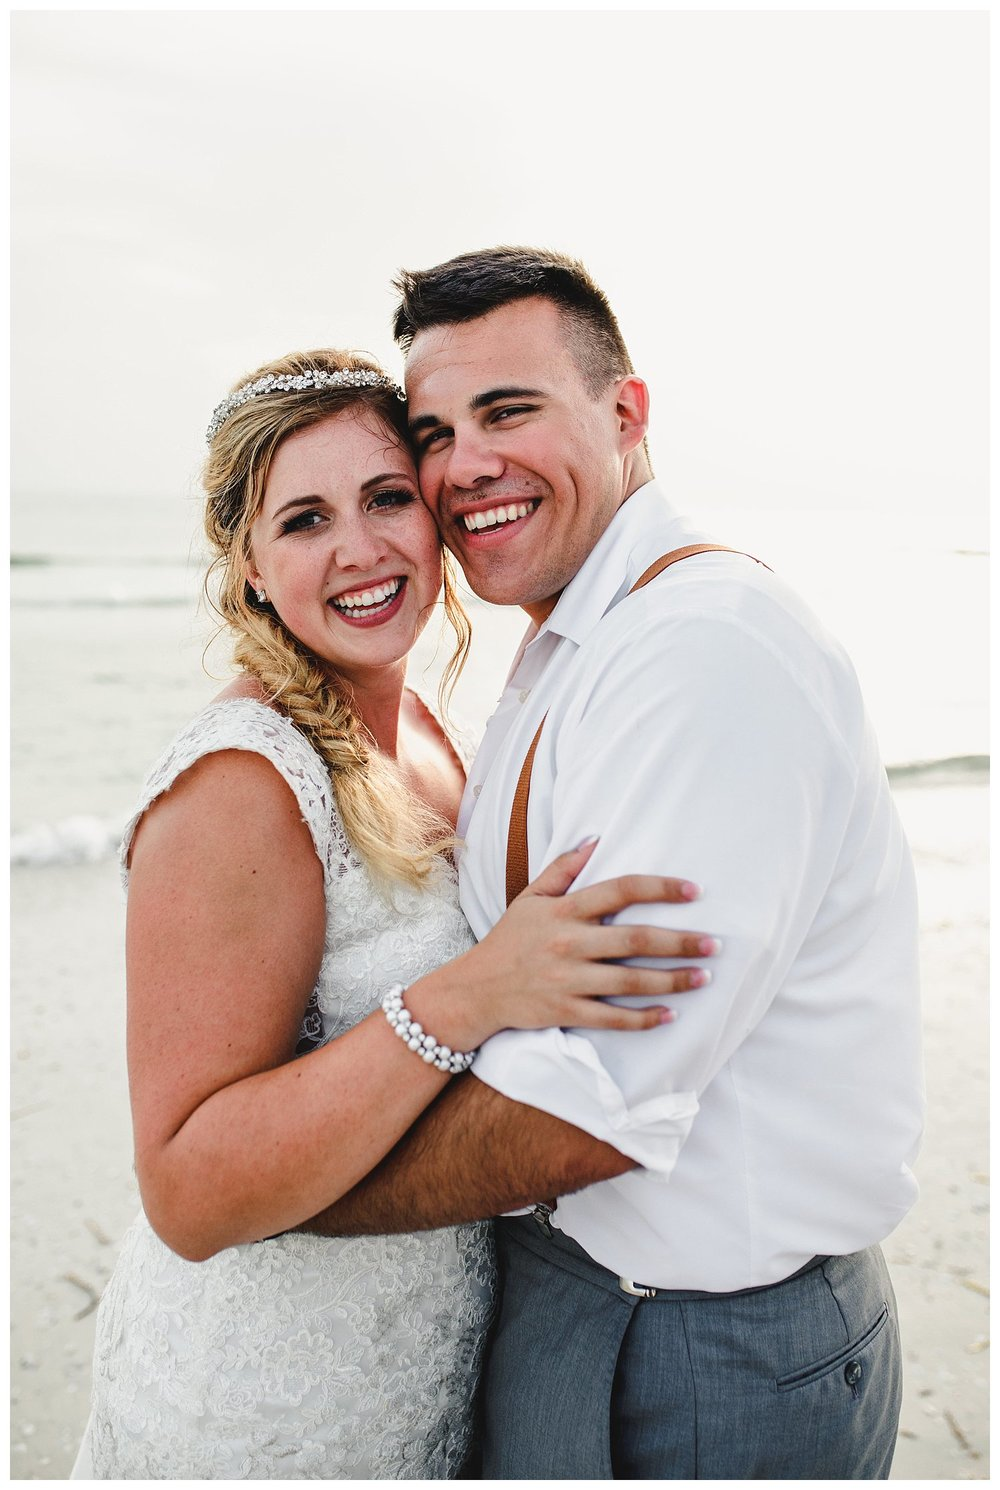 Kelsey_Diane_Photography_Destination_Wedding_Sarasota_Florida_Beach_Wedding_Alex_Austin_0676.jpg